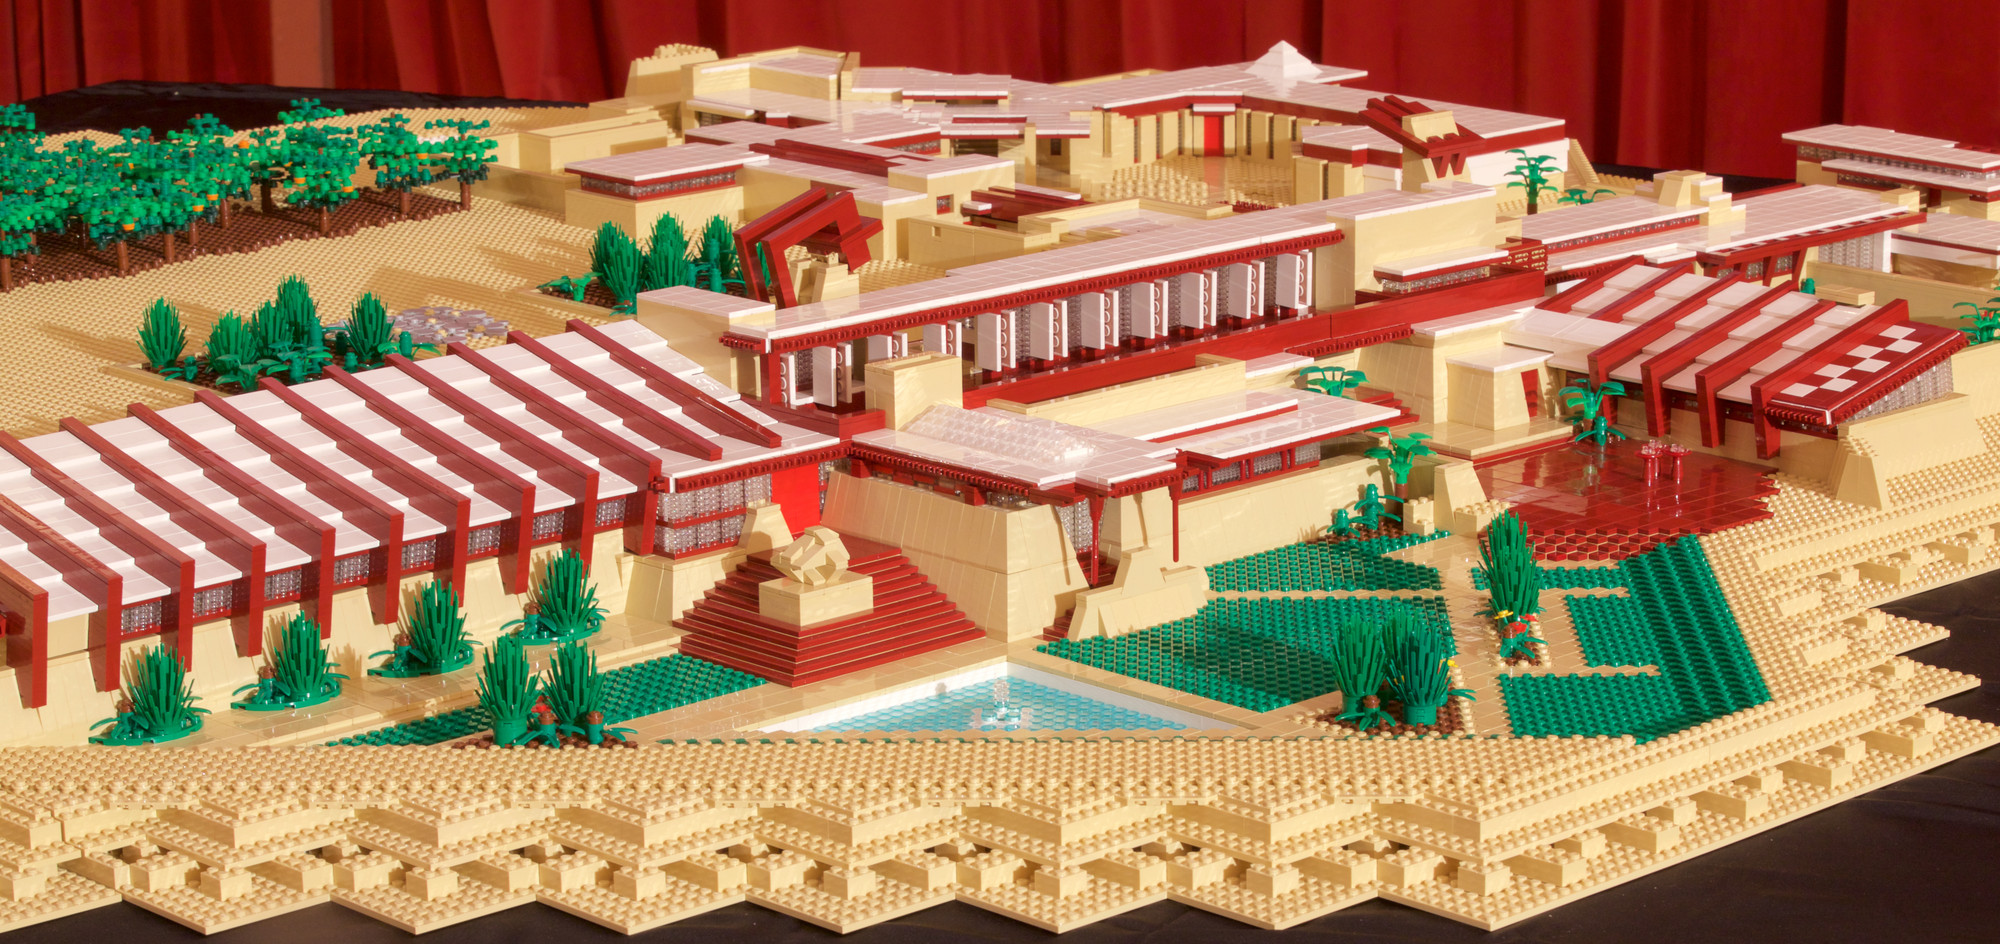 Taliesin West Reconstructed as Largest Frank Lloyd Wright LEGO® Model, © Andrew Pielage Photography